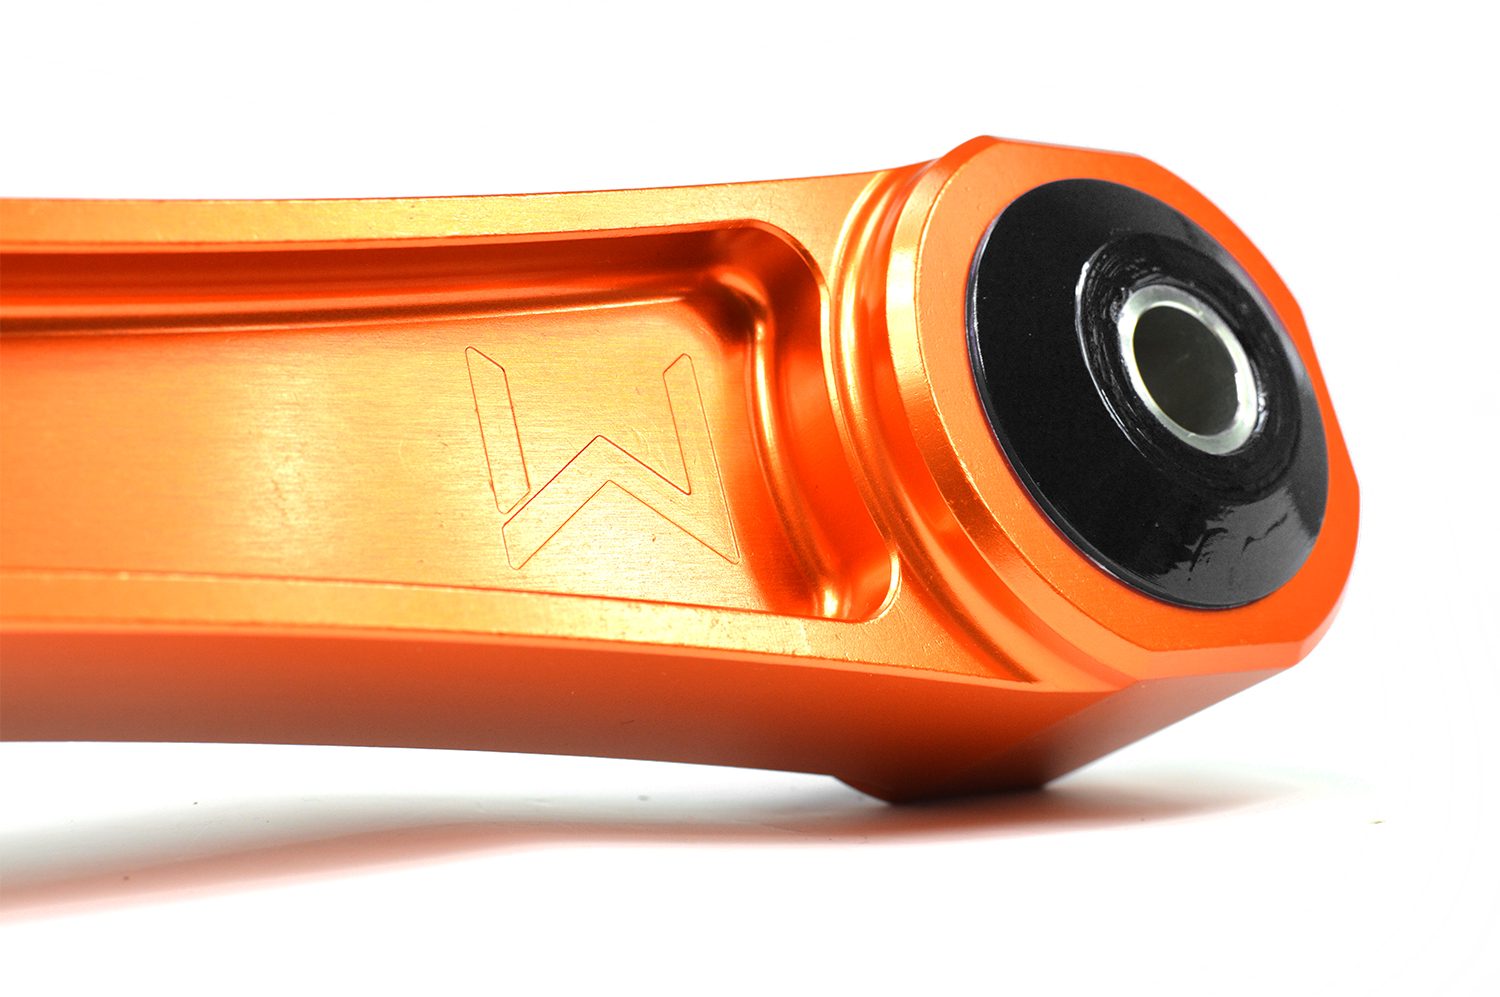 Vibrant orange anodized for corrosion resistance and great style in your engine bay